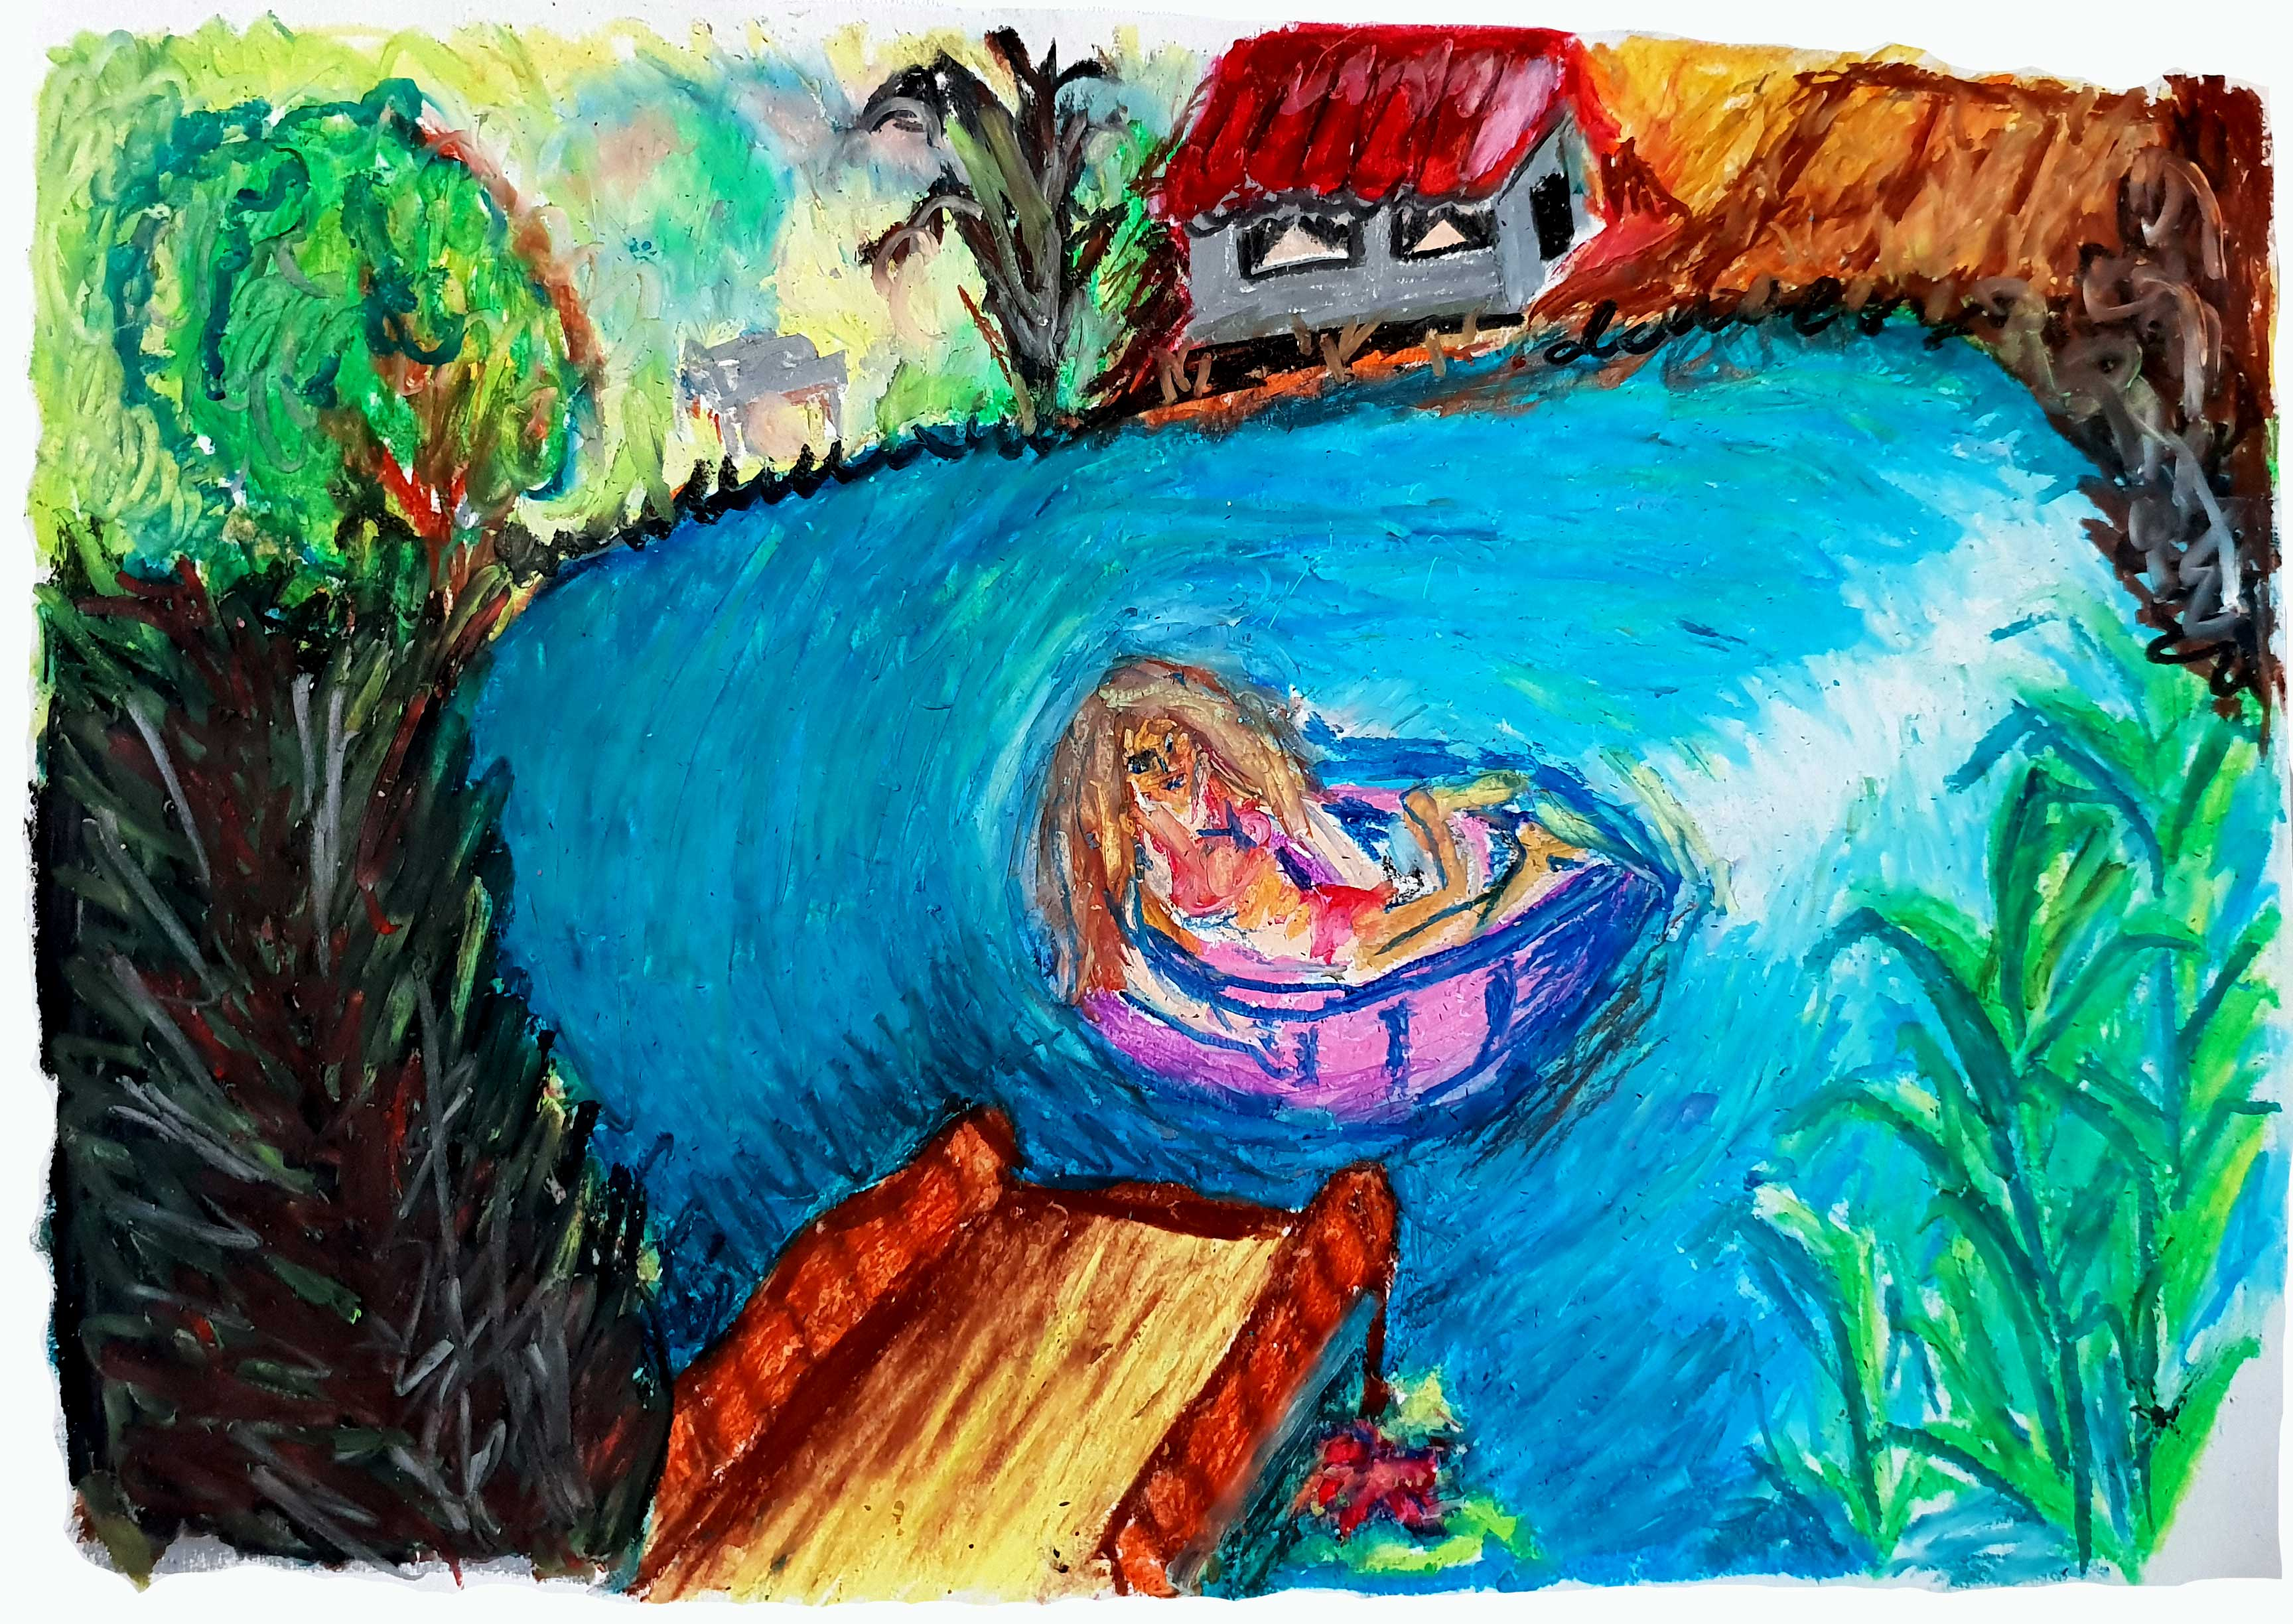 Magic Pond with Girl in the Boat